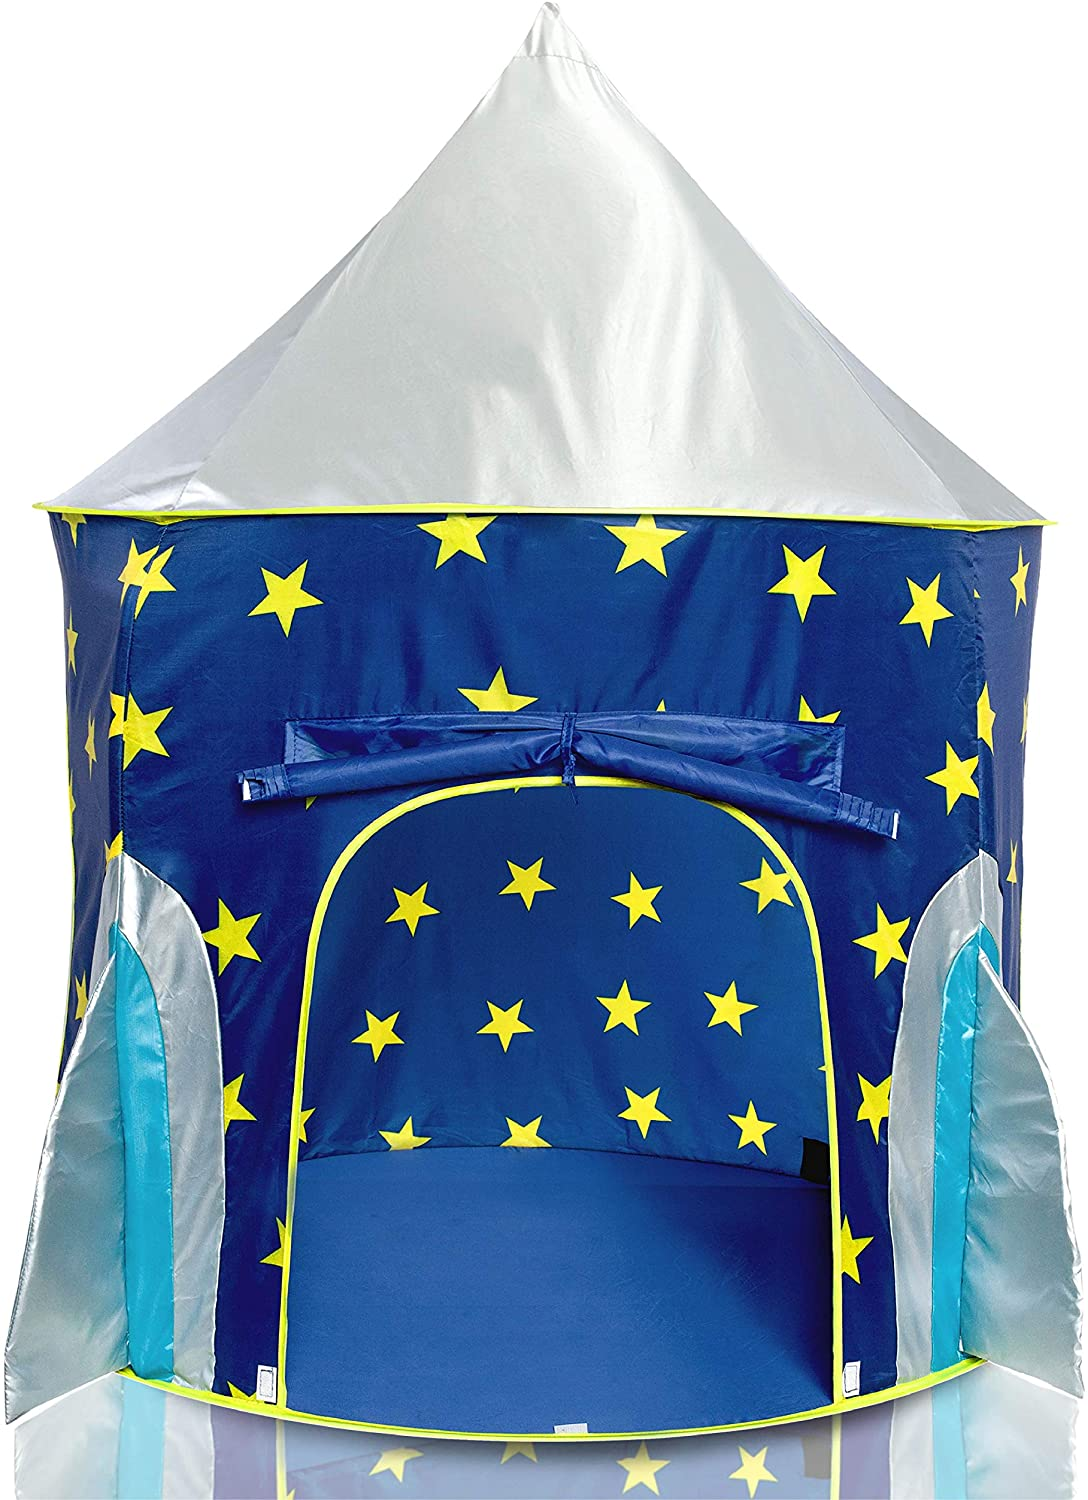 best USA Toyz Rocket Ship Indoor Playhouse Pop Up Kids Tent With Space Projector Toys